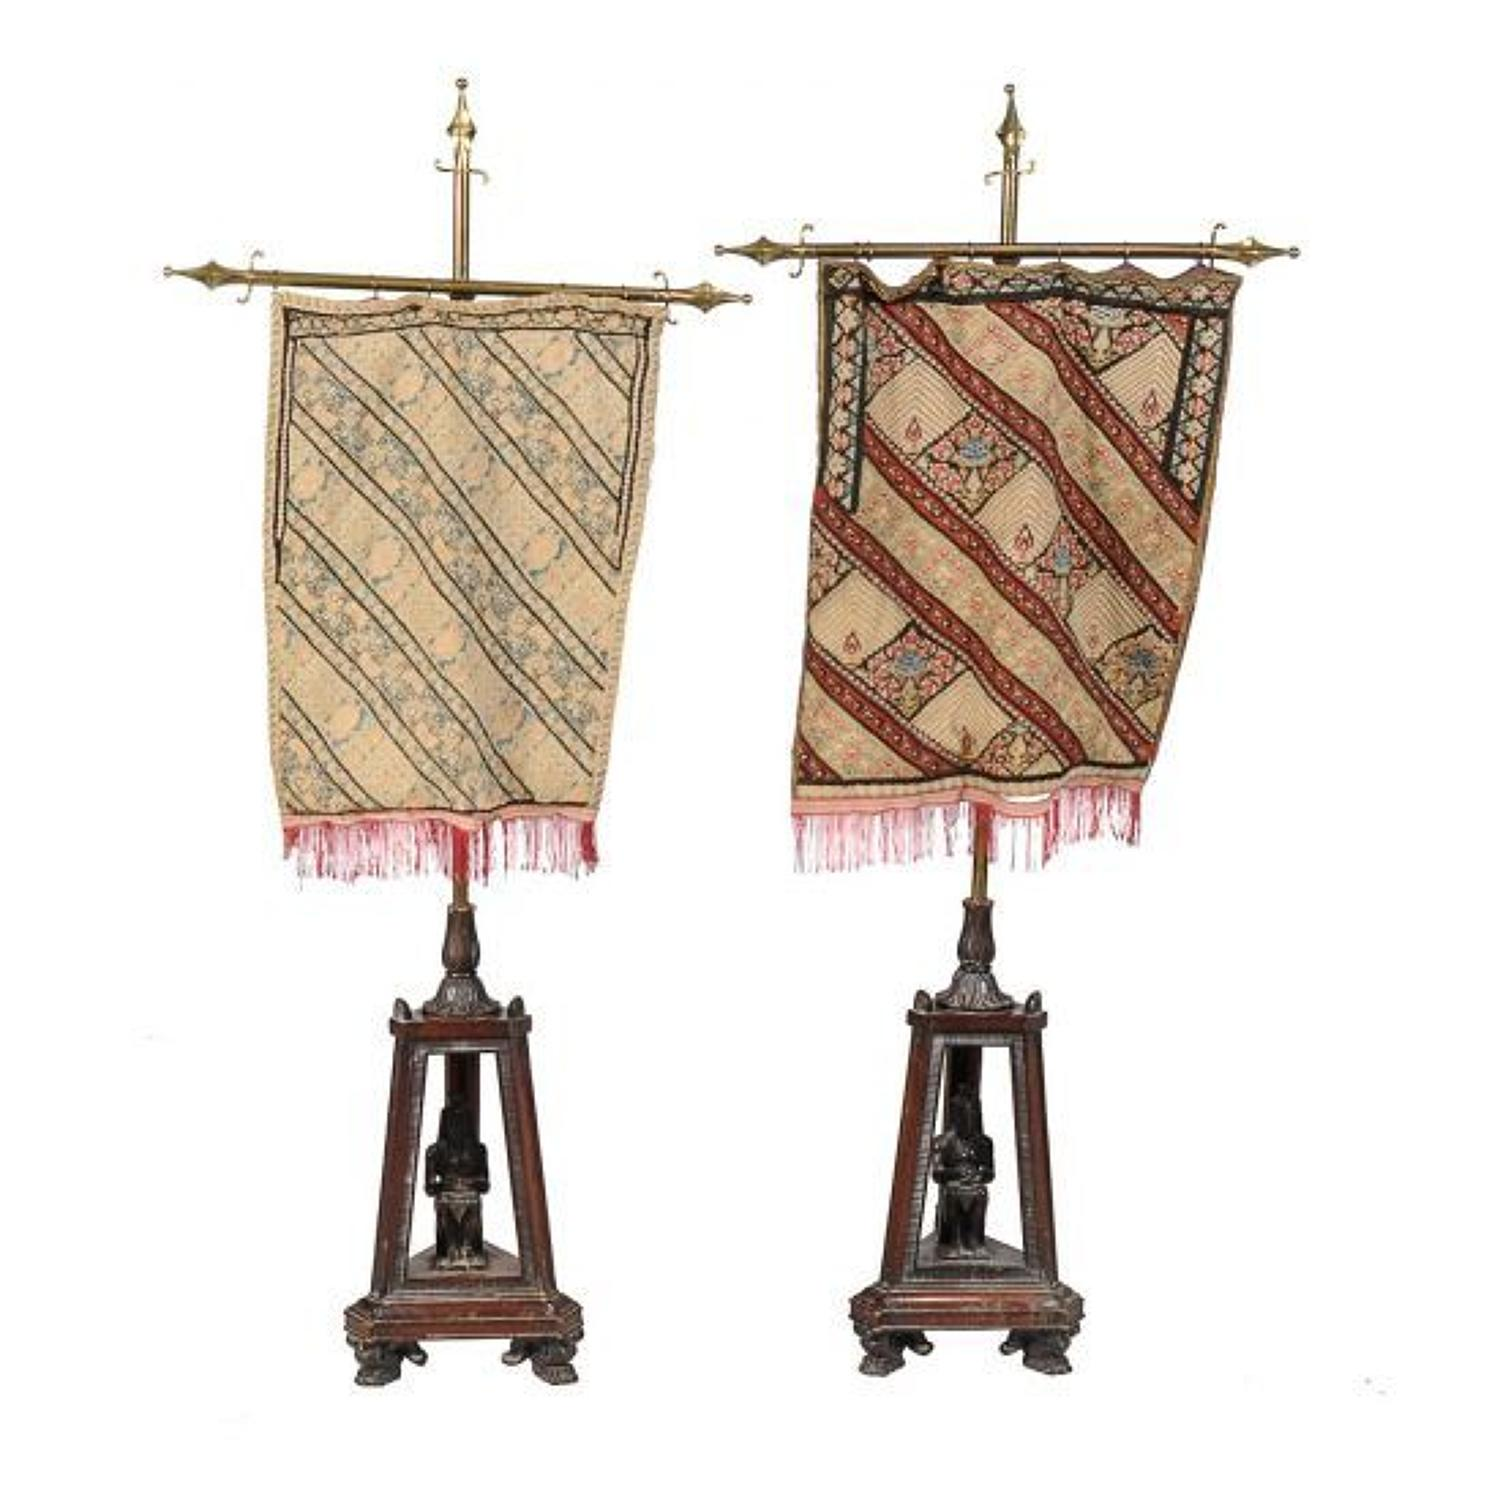 A pair of pole screens (Egyptian revival)